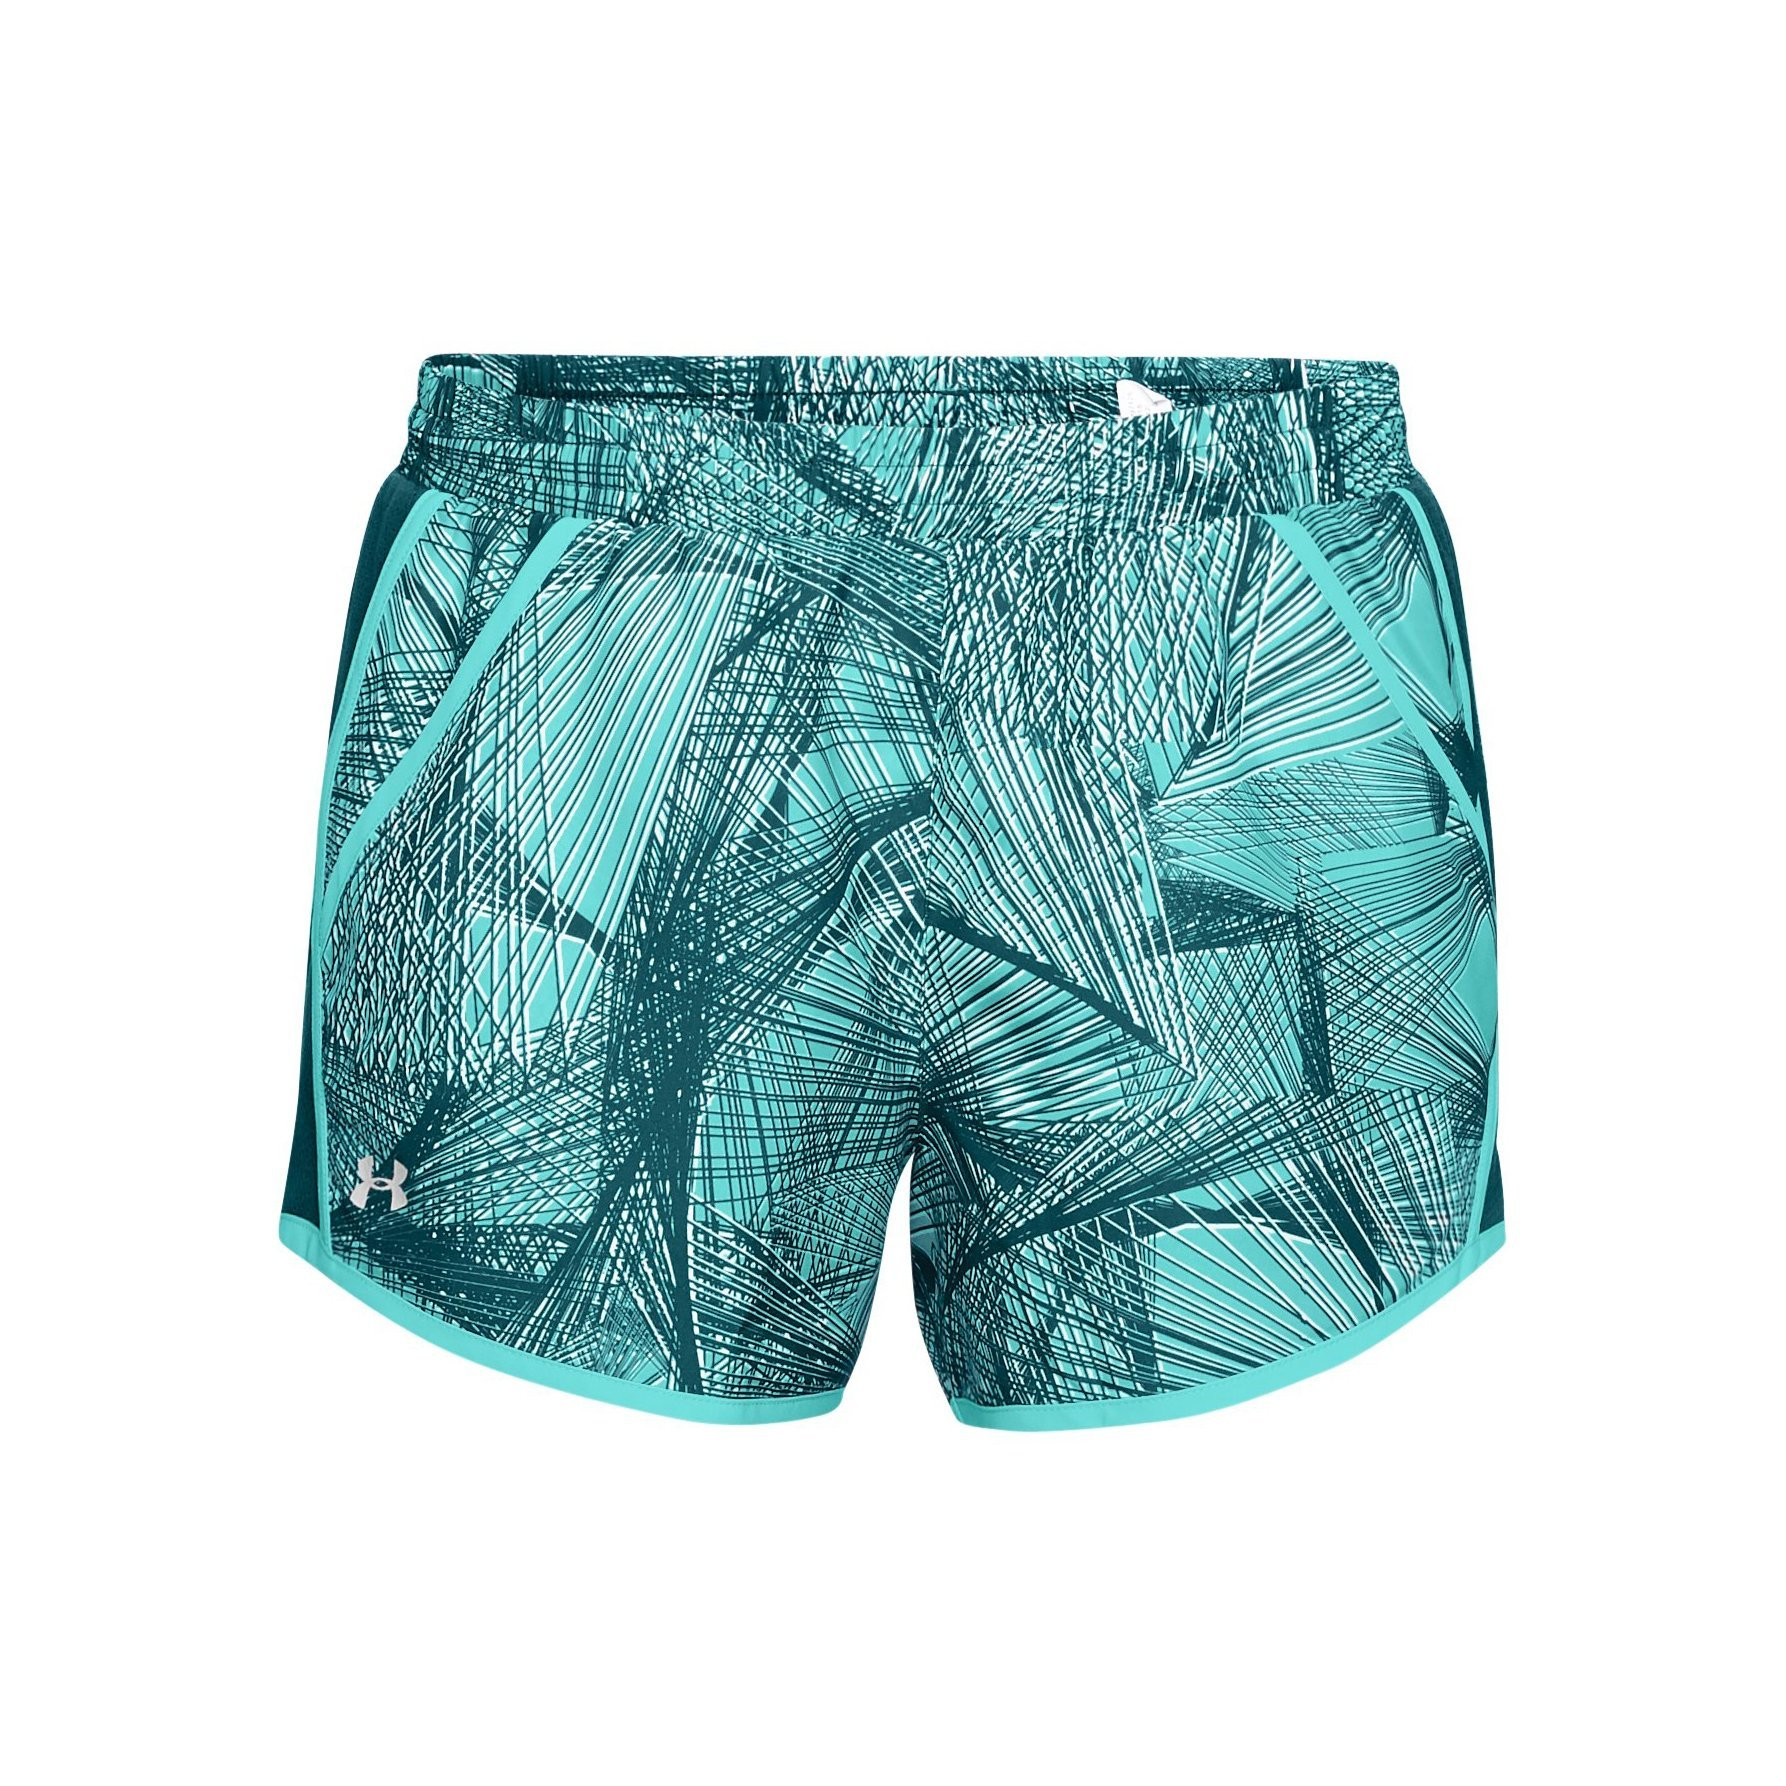 Under Armour Women's Fly-by Printed Shorts, Tropical Tide (425)/Reflective, X-Small